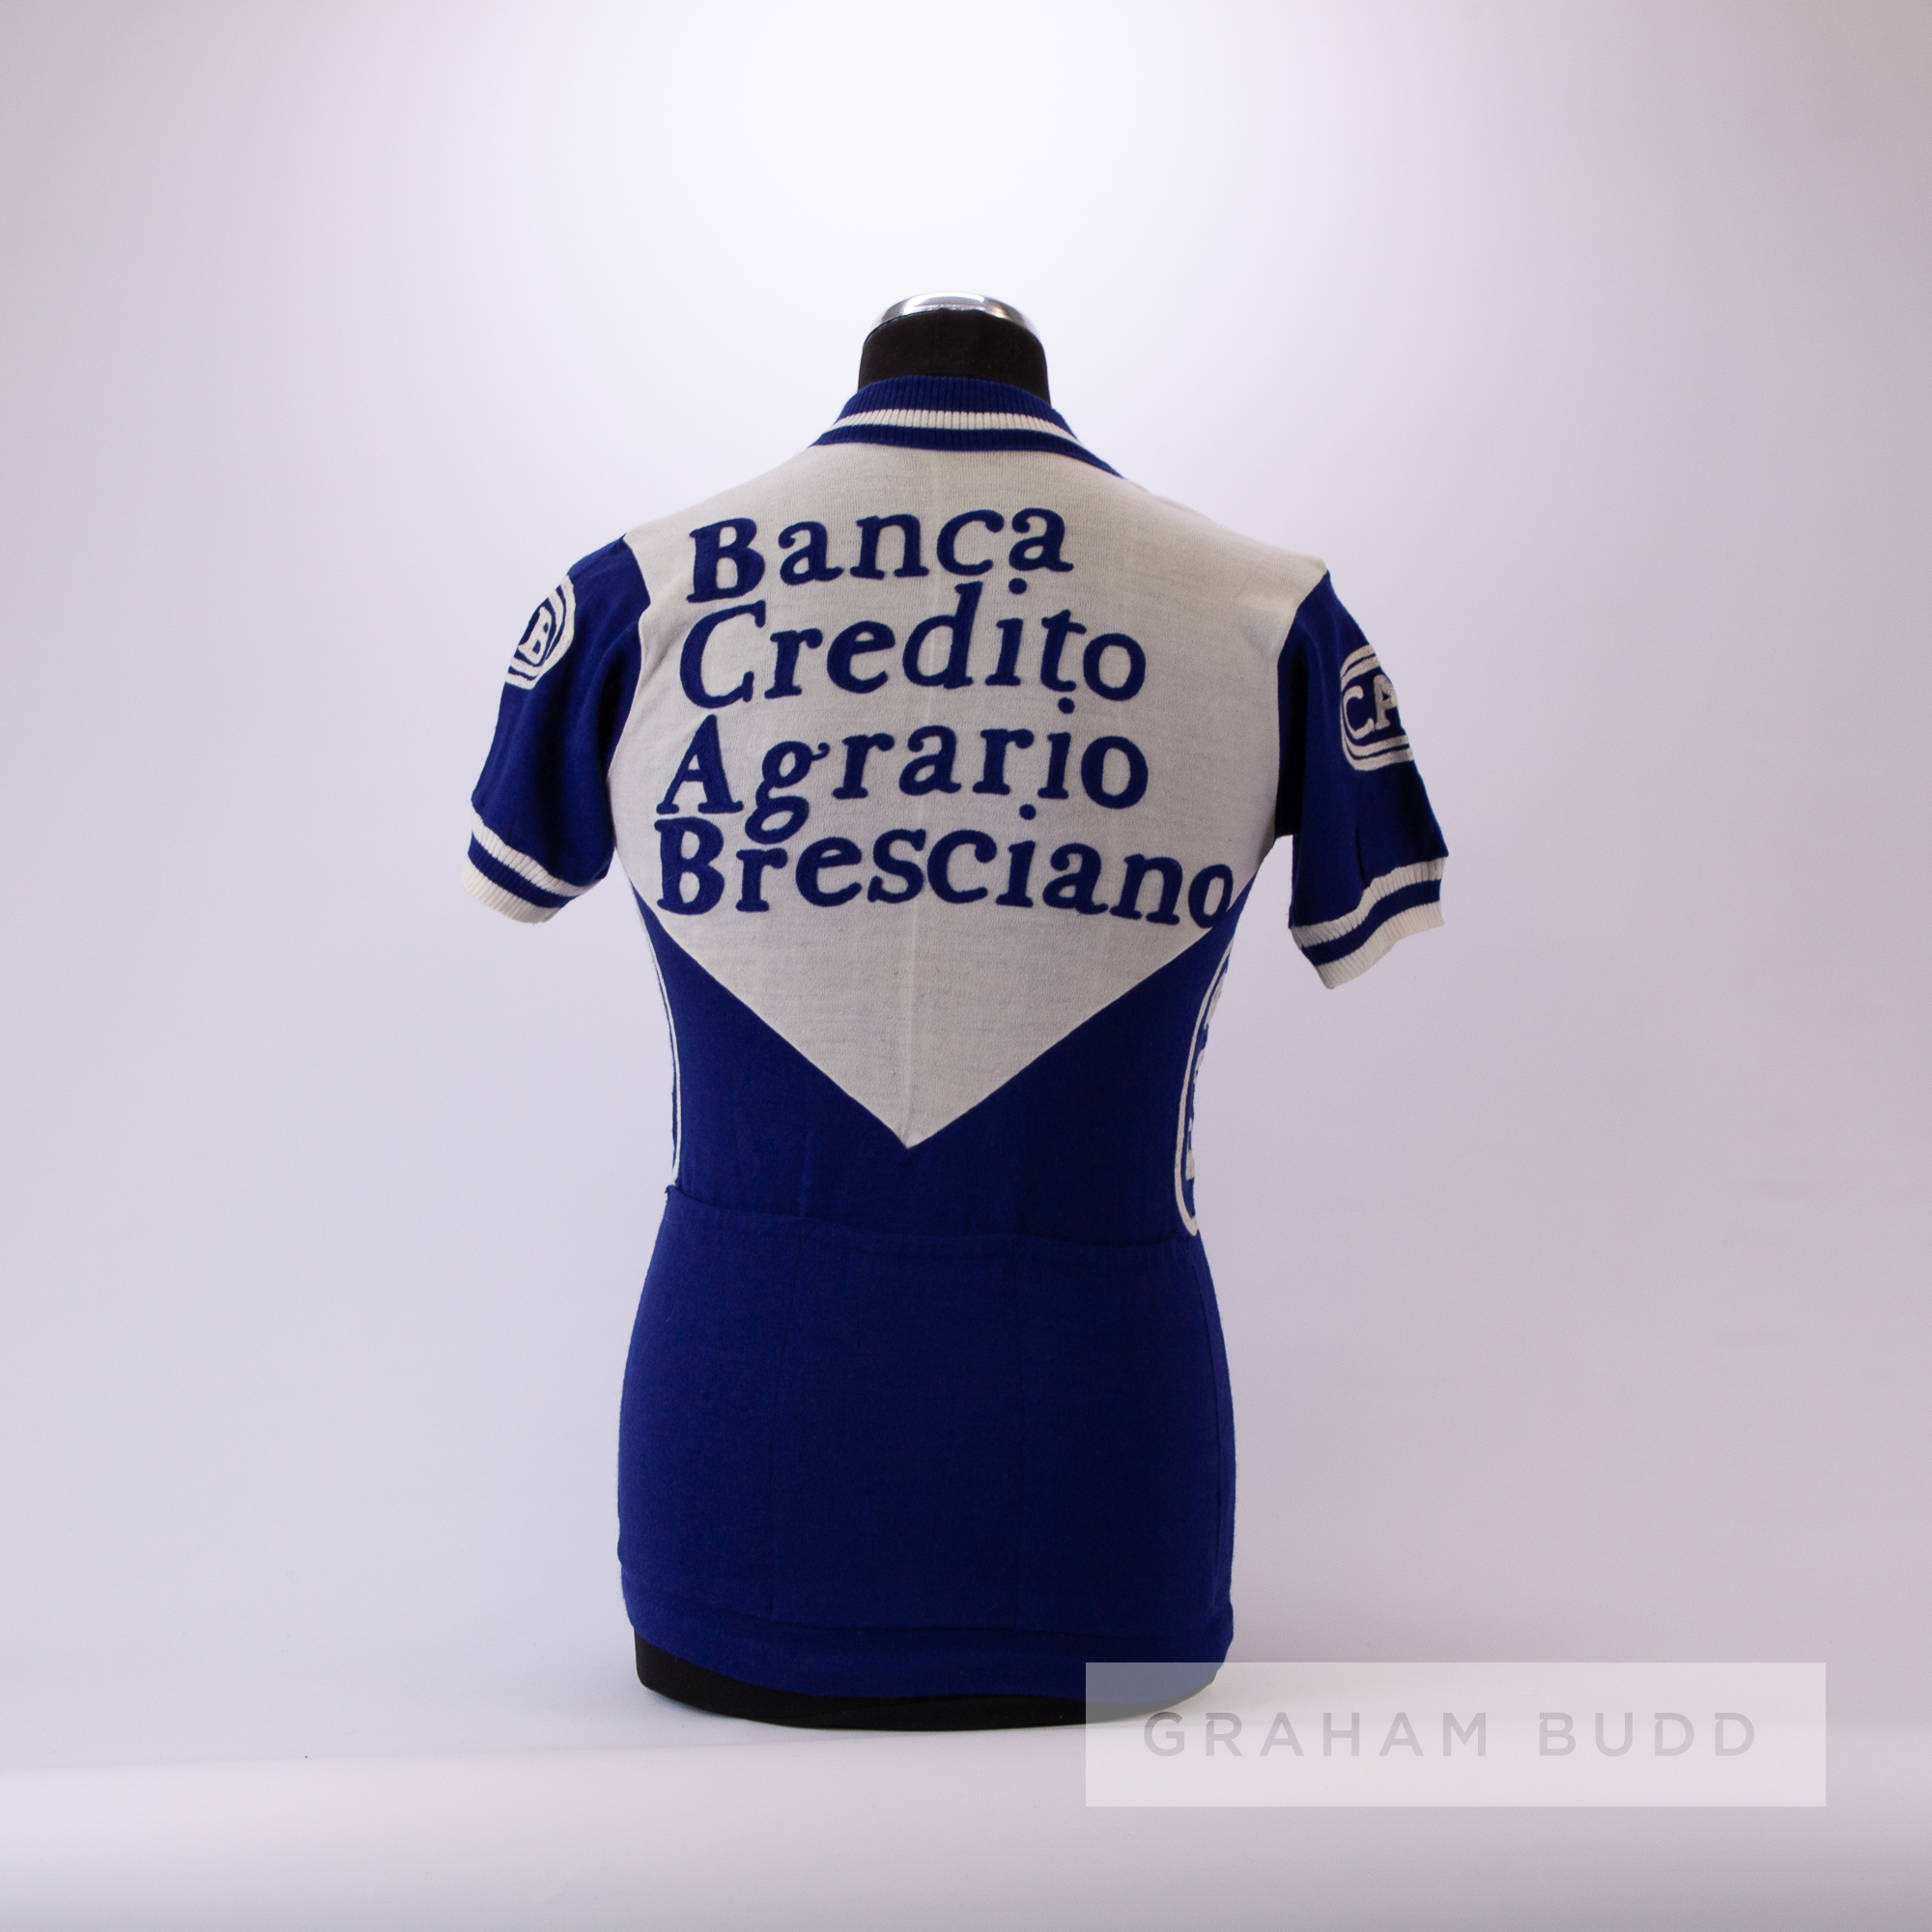 1978 white and blue vintage Italian Eroica Cycling team race/tour jersey, scarce, acrylic short- - Image 4 of 4